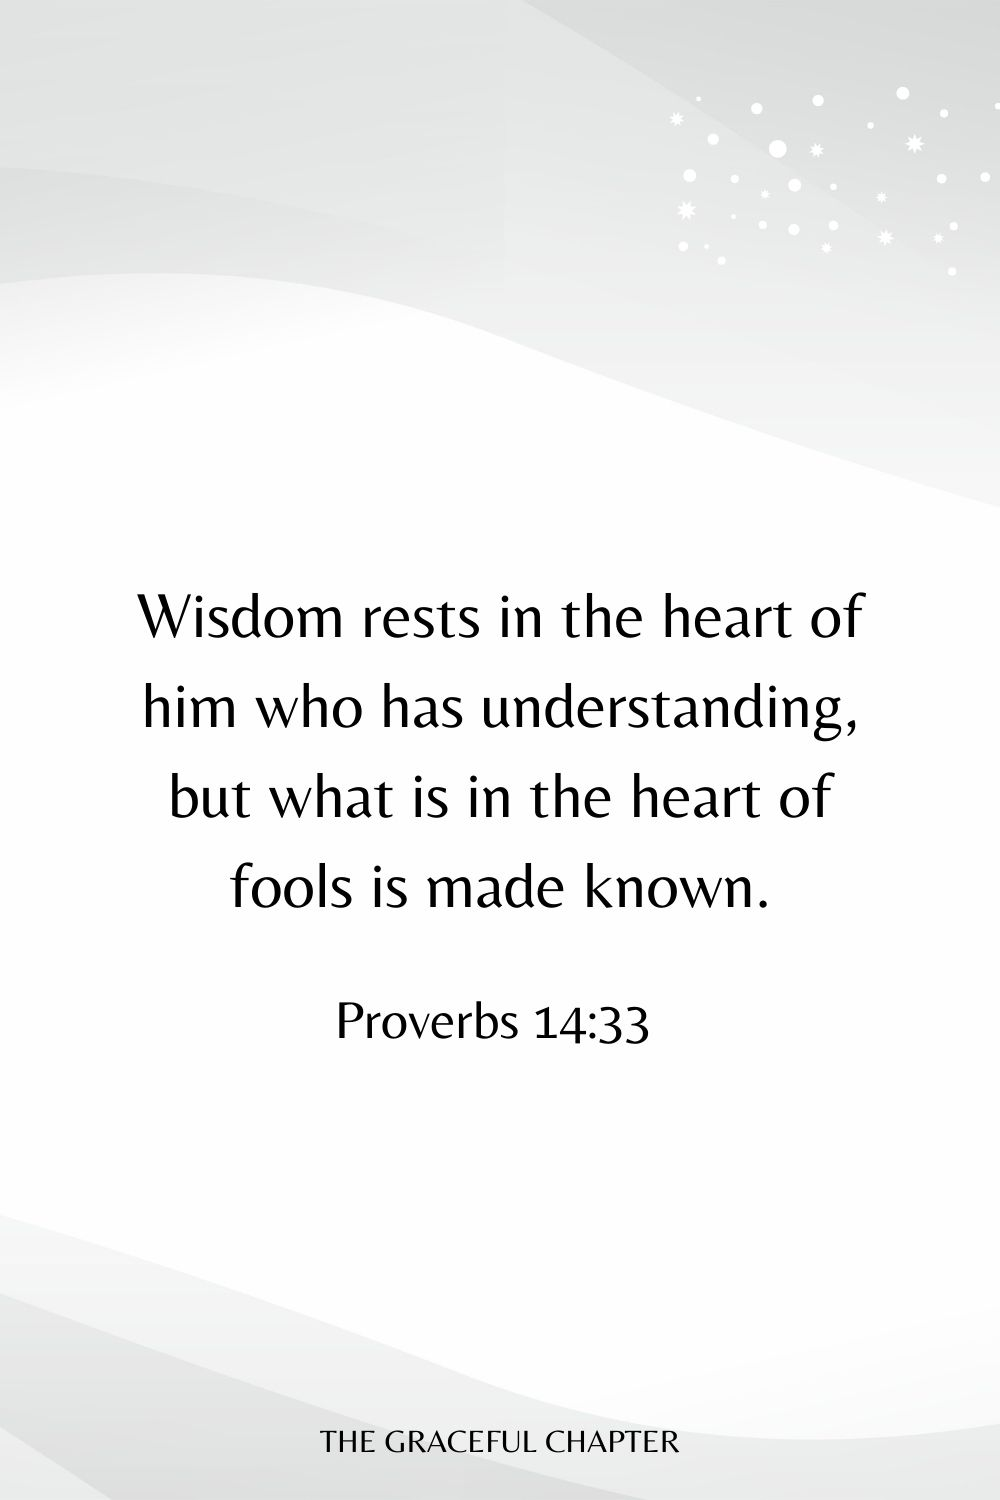 Wisdom rests in the heart of him who has understanding, but what is in the heart of fools is made known. Proverbs 14:33